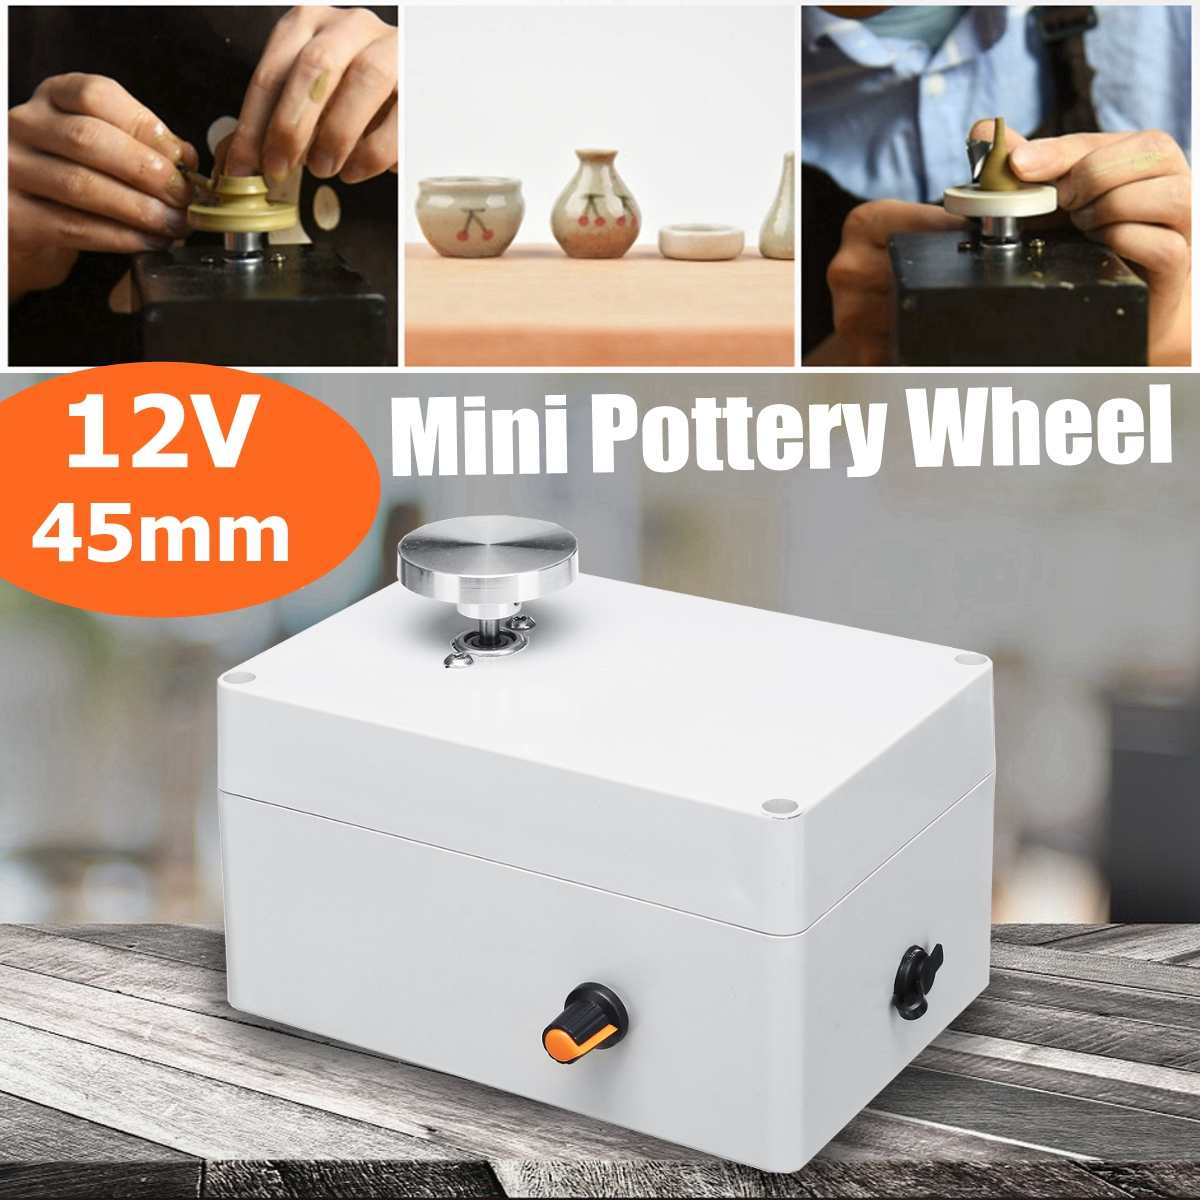 US $37.59 44% OFF|12V Aluminum alloy Fingertip Mini Pottery Wheel 4.5cm Turntable Knob Stepless Speed Change|Pottery Wheels| AliExpress